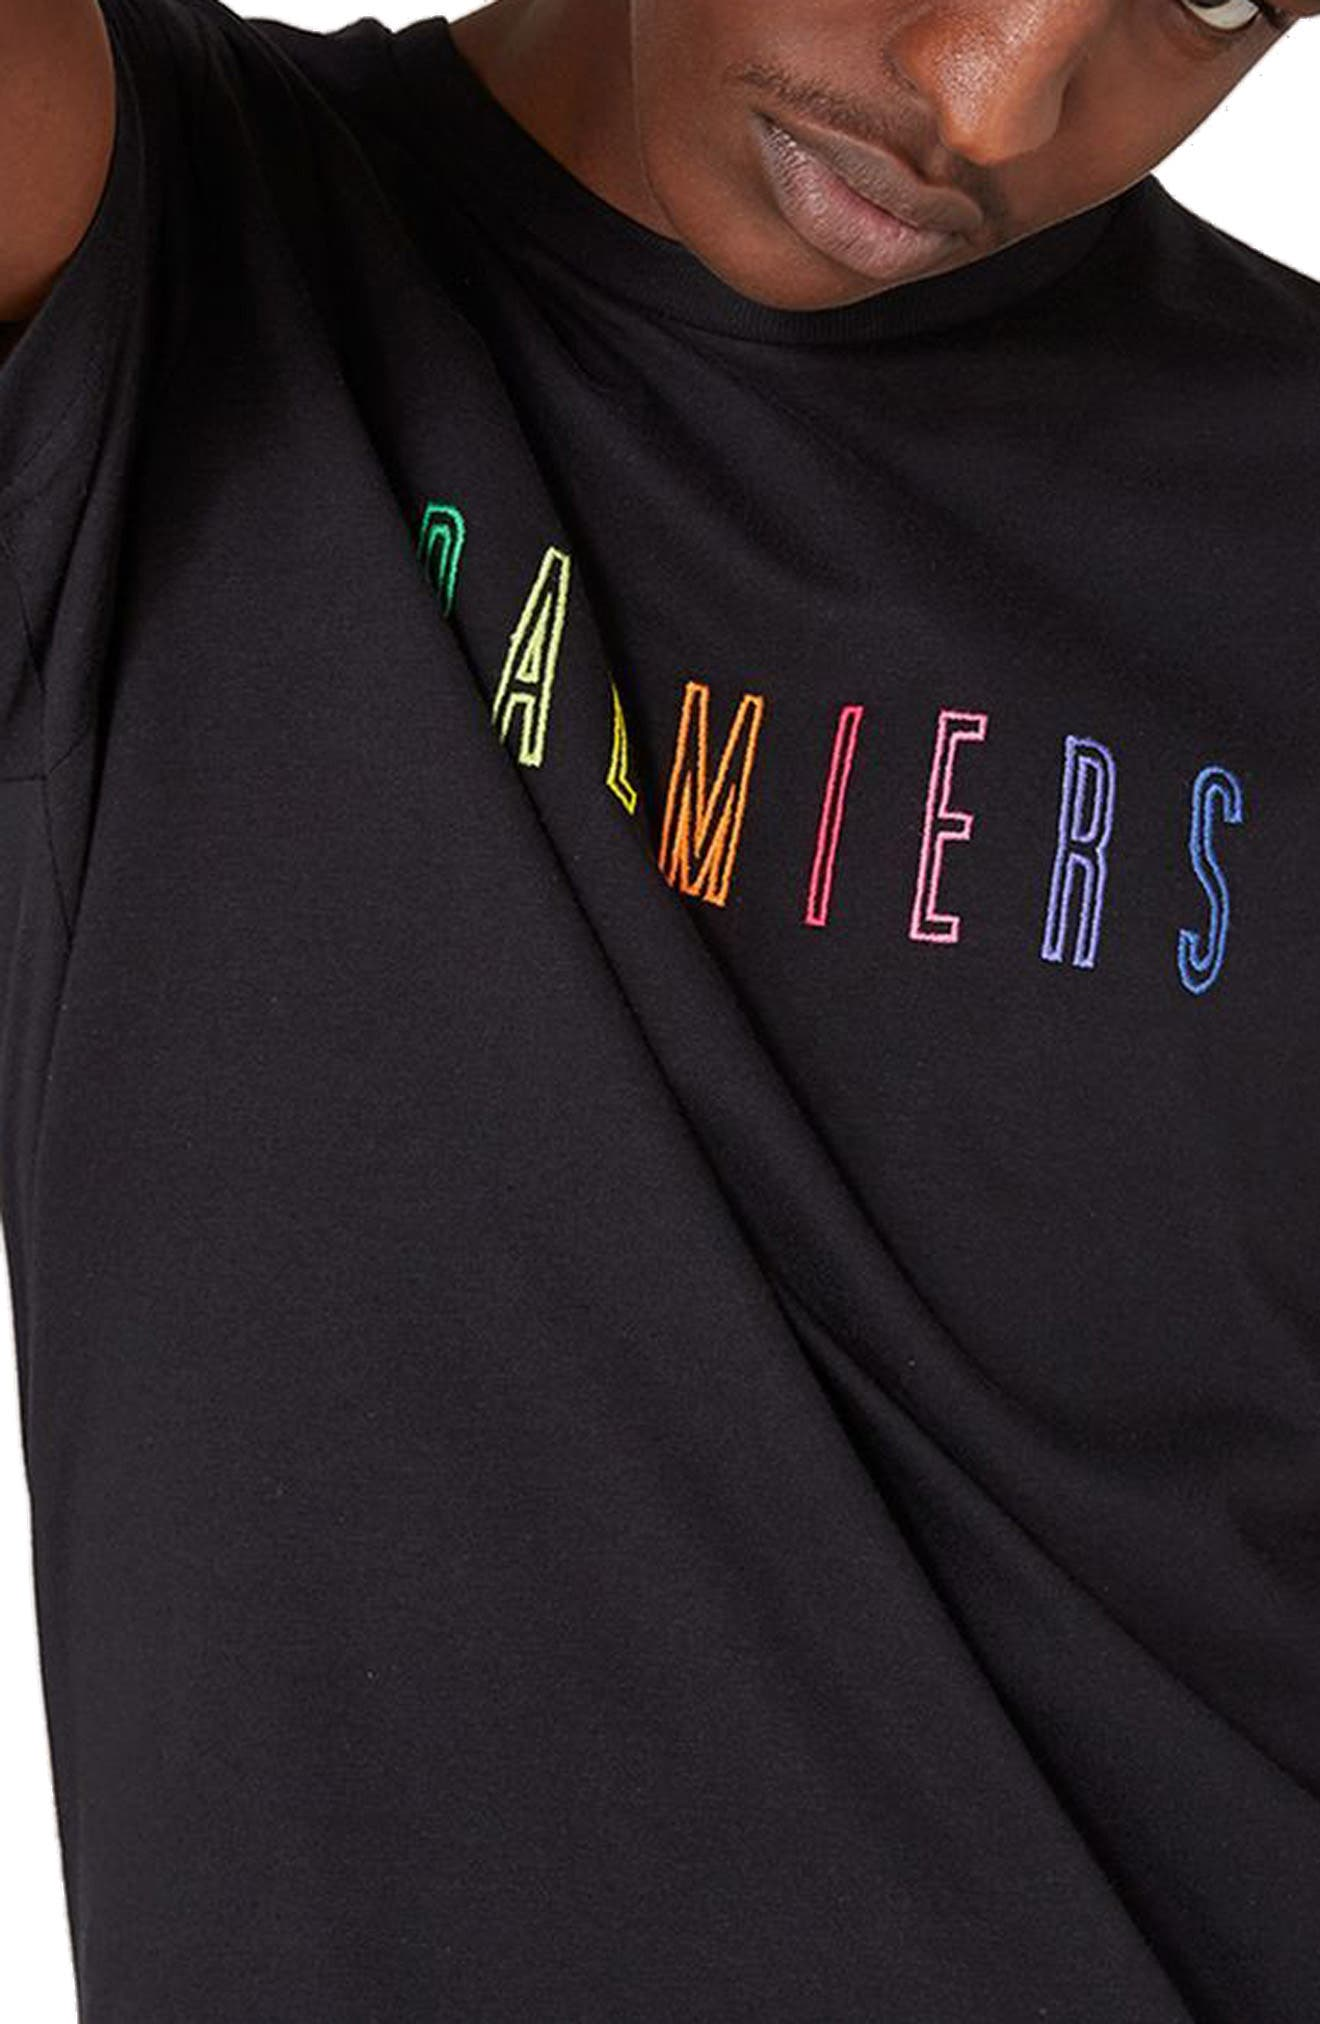 Palmiers Embroidered T-Shirt,                             Alternate thumbnail 3, color,